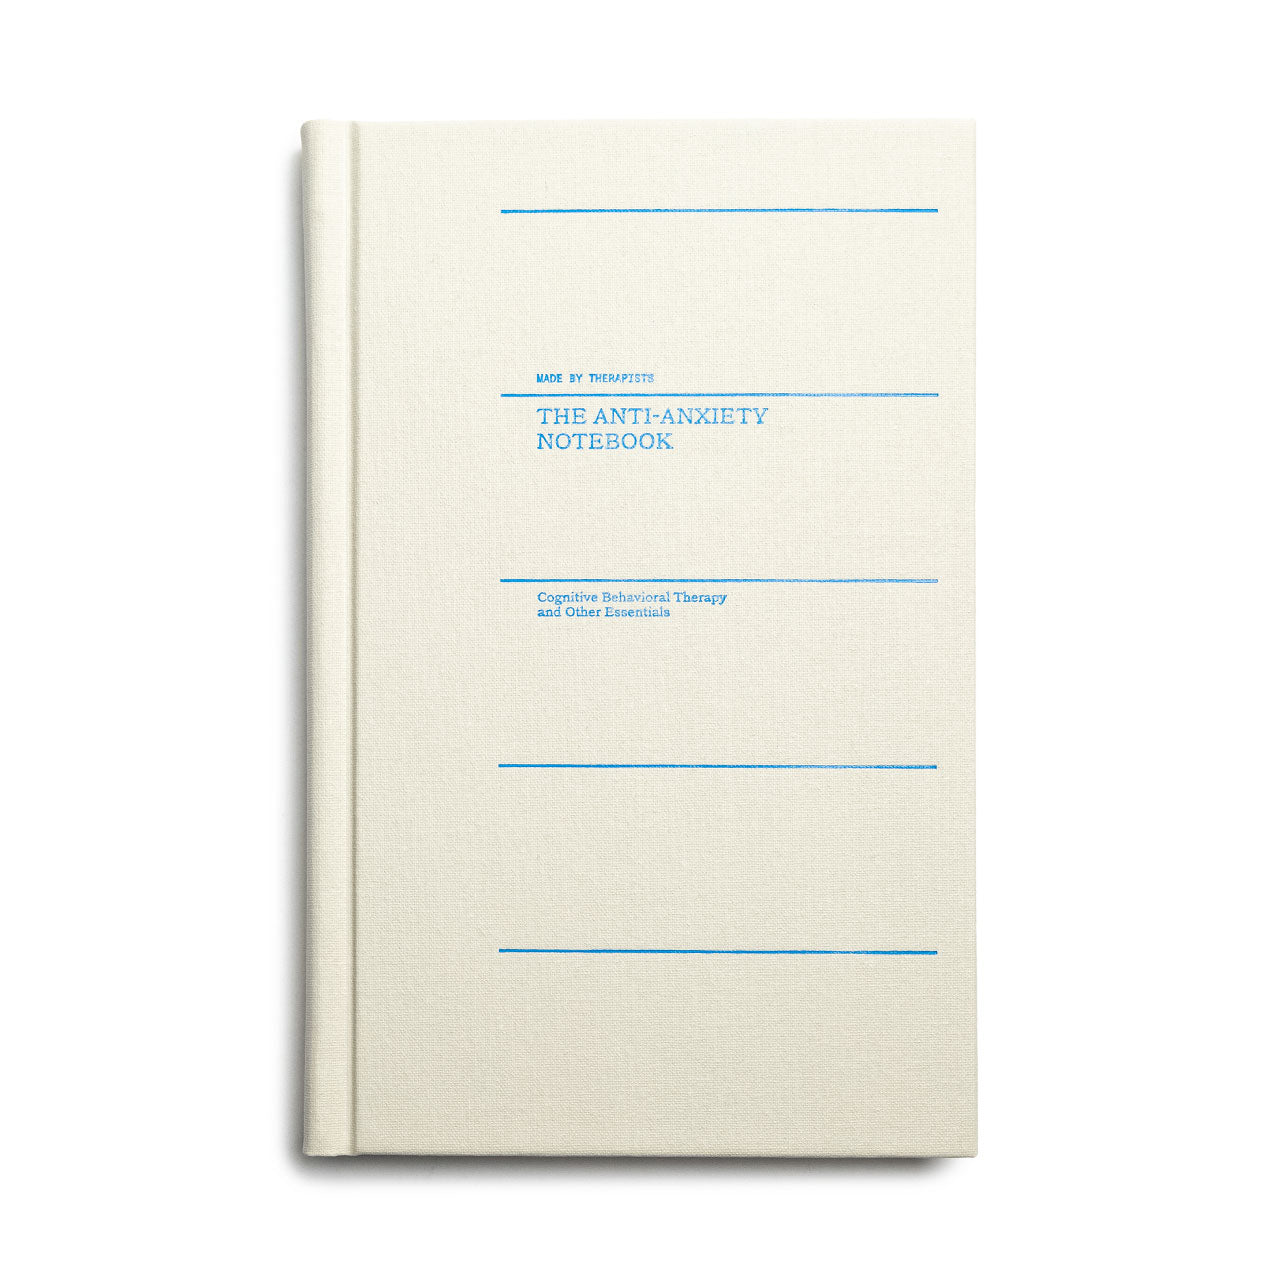 The Anti-Anxiety Notebook